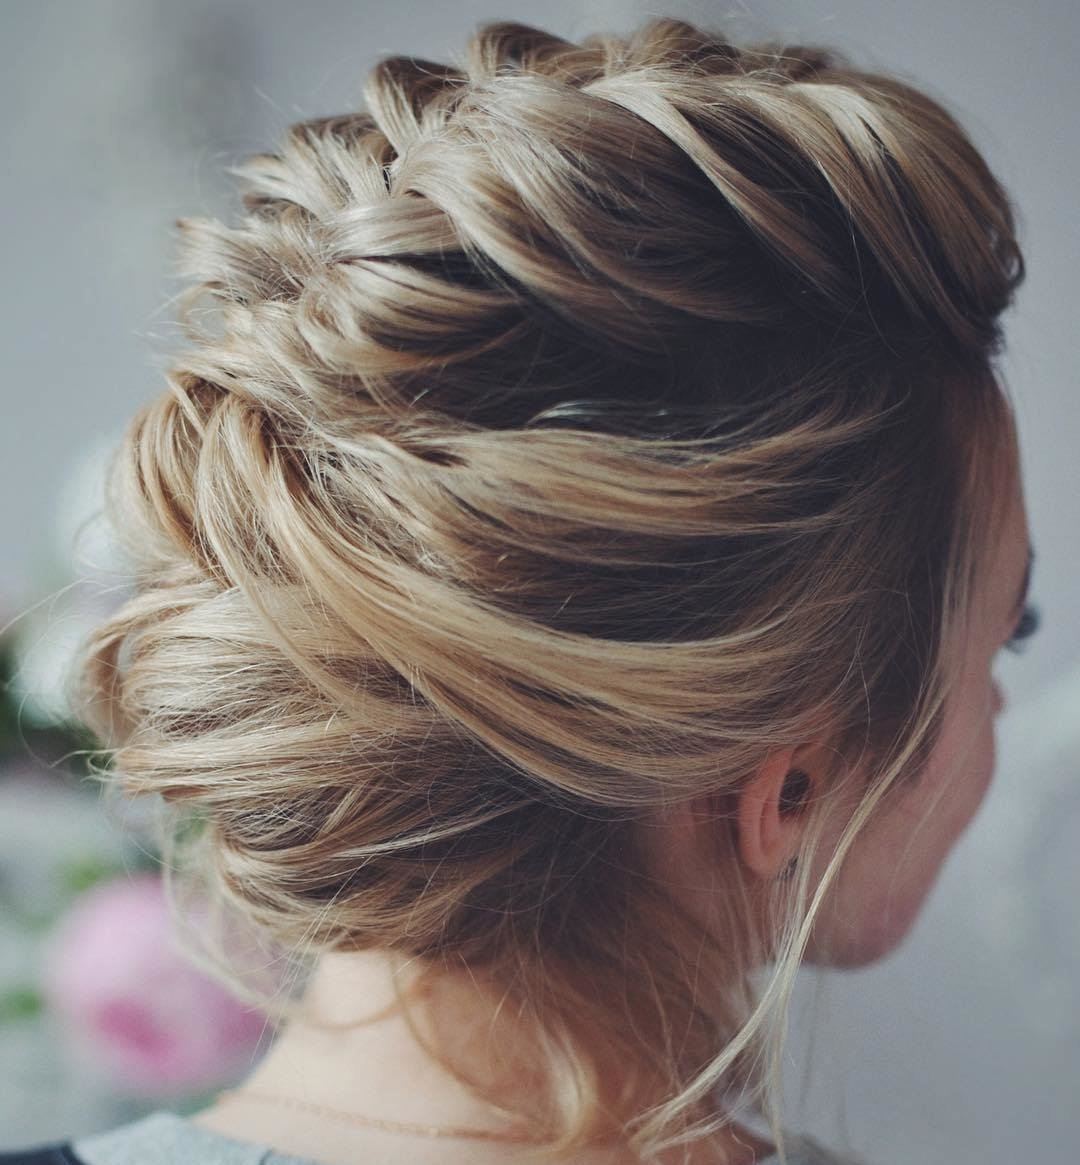 New 50 Hottest Prom Hairstyles For Short Hair Ideas With Pictures